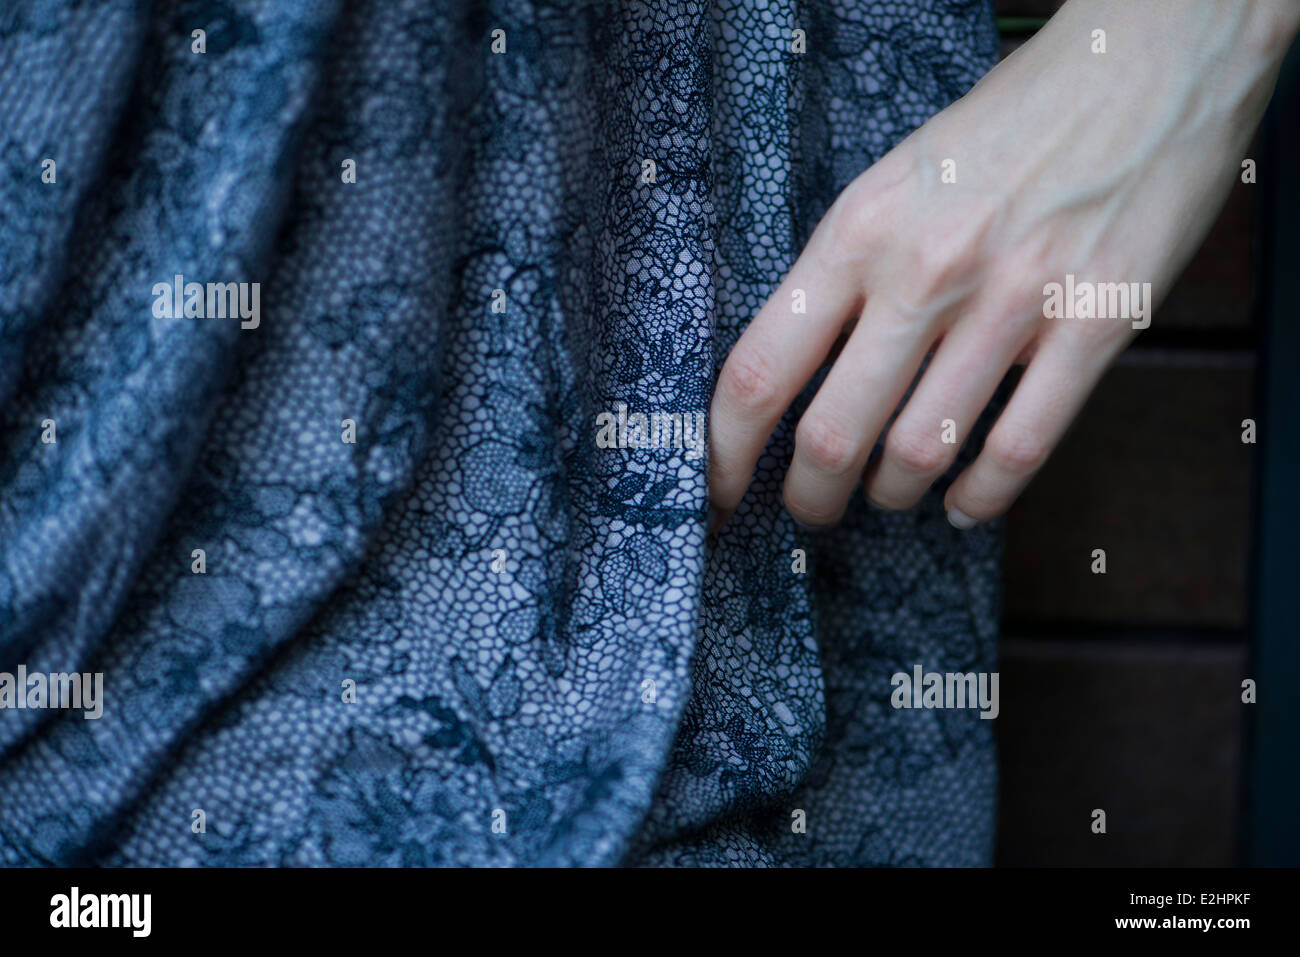 Close-up of woman's hand - Stock Image